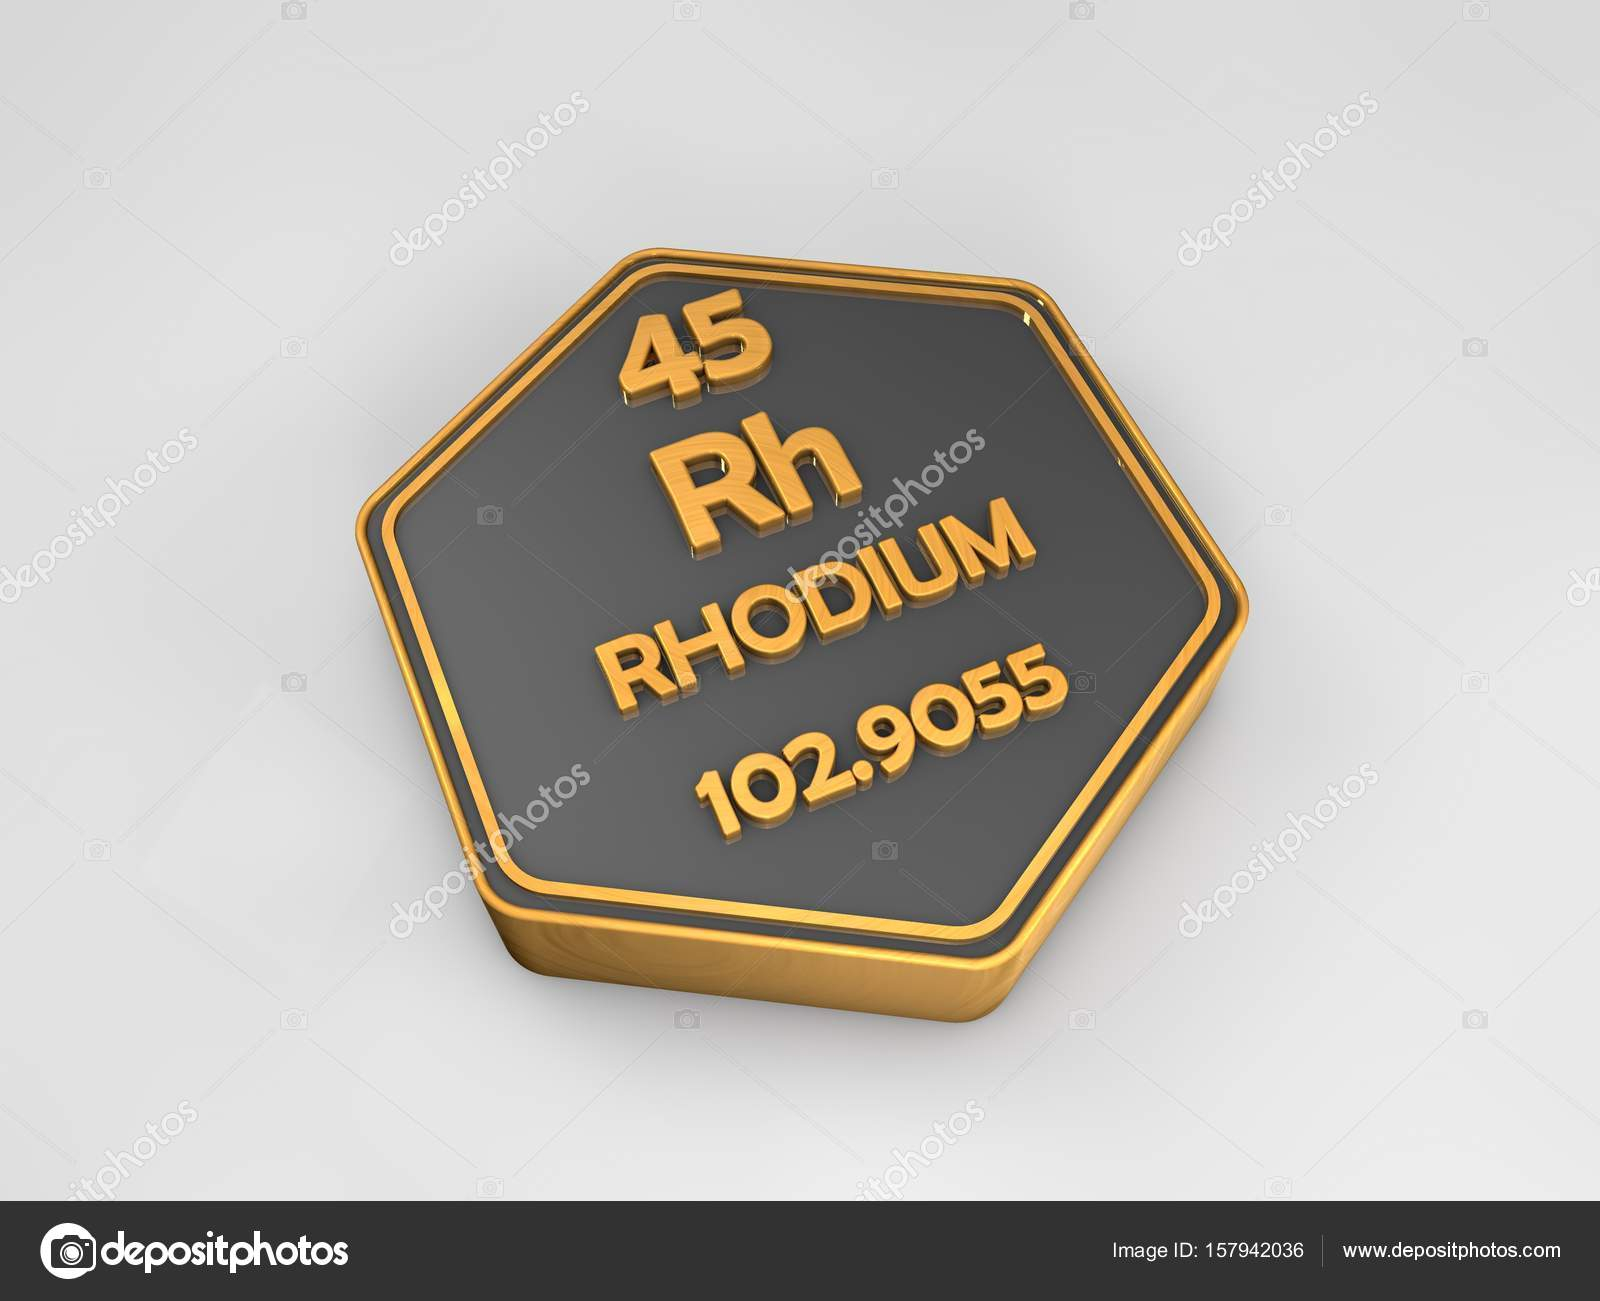 Rhodium rh chemical element periodic table hexagonal shape 3d rhodium rh chemical element periodic table hexagonal shape 3d render stock photo gamestrikefo Image collections